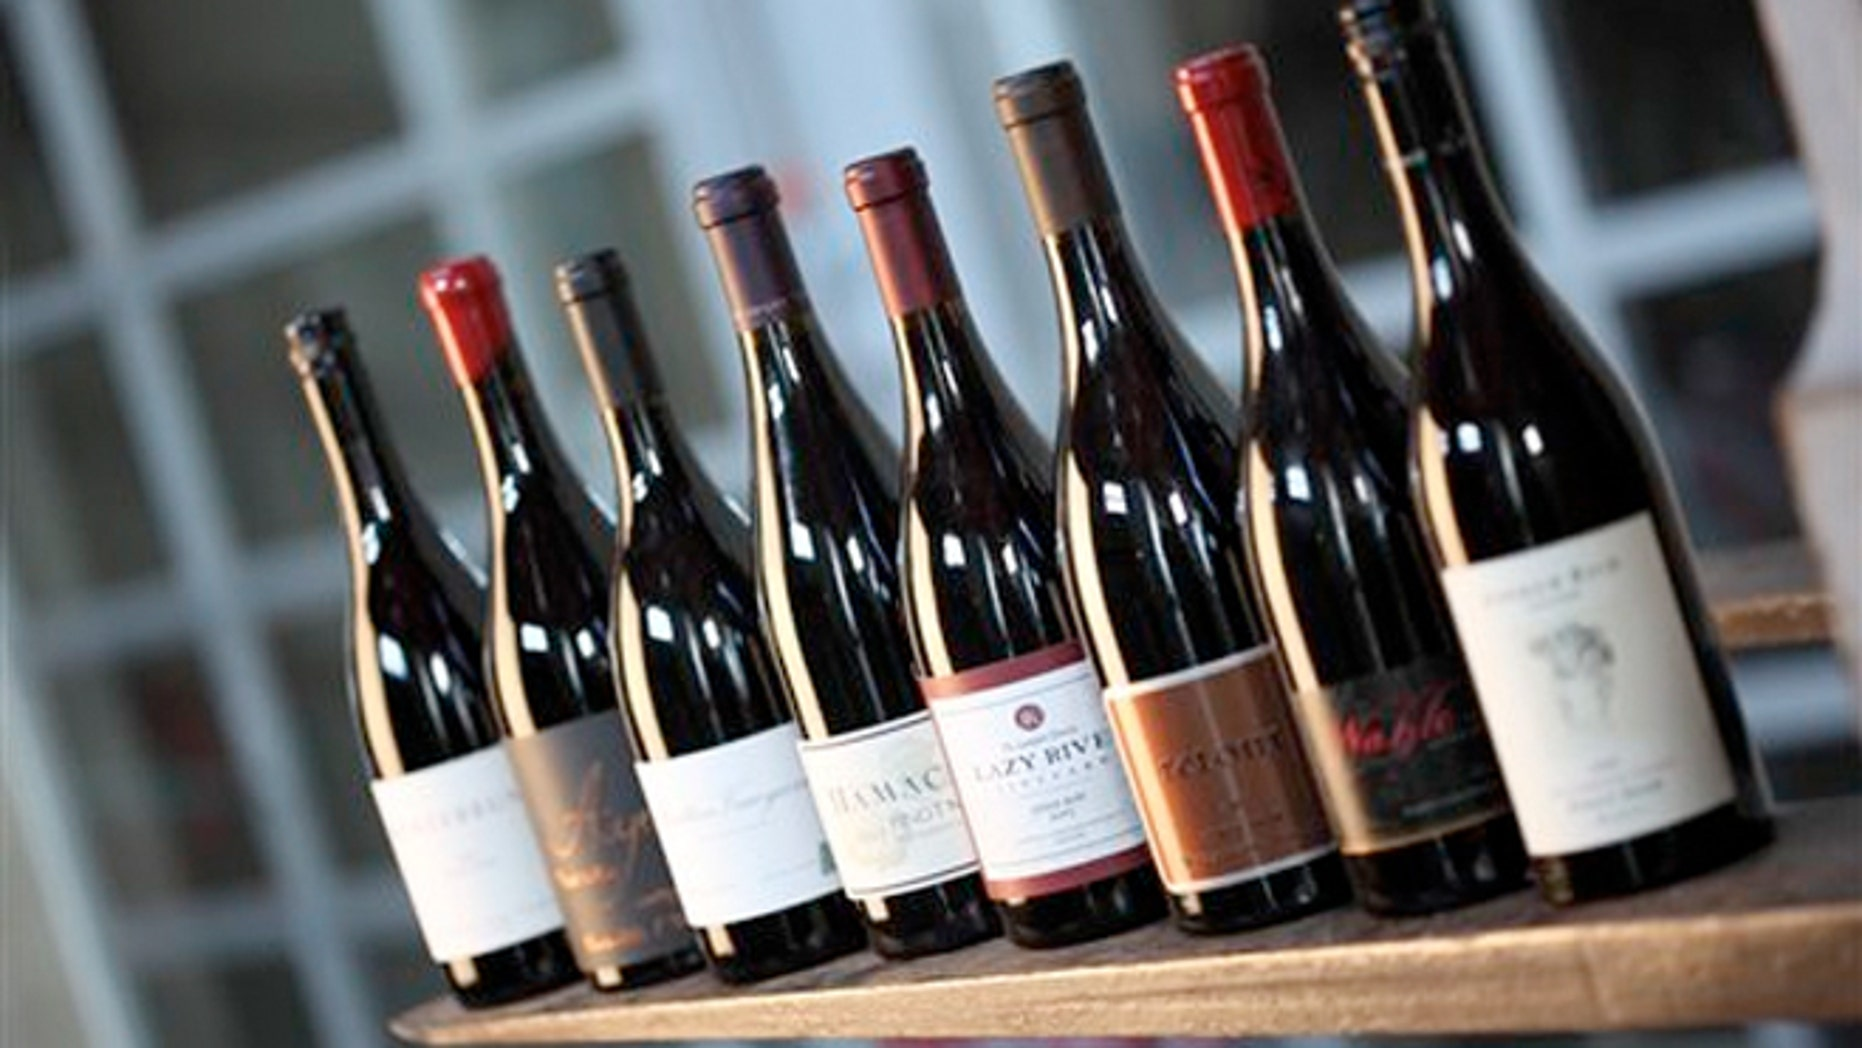 Oregon is home to 500 wineries and a growing wine tourism industry, and the state is developing a reputation for pinot noir.